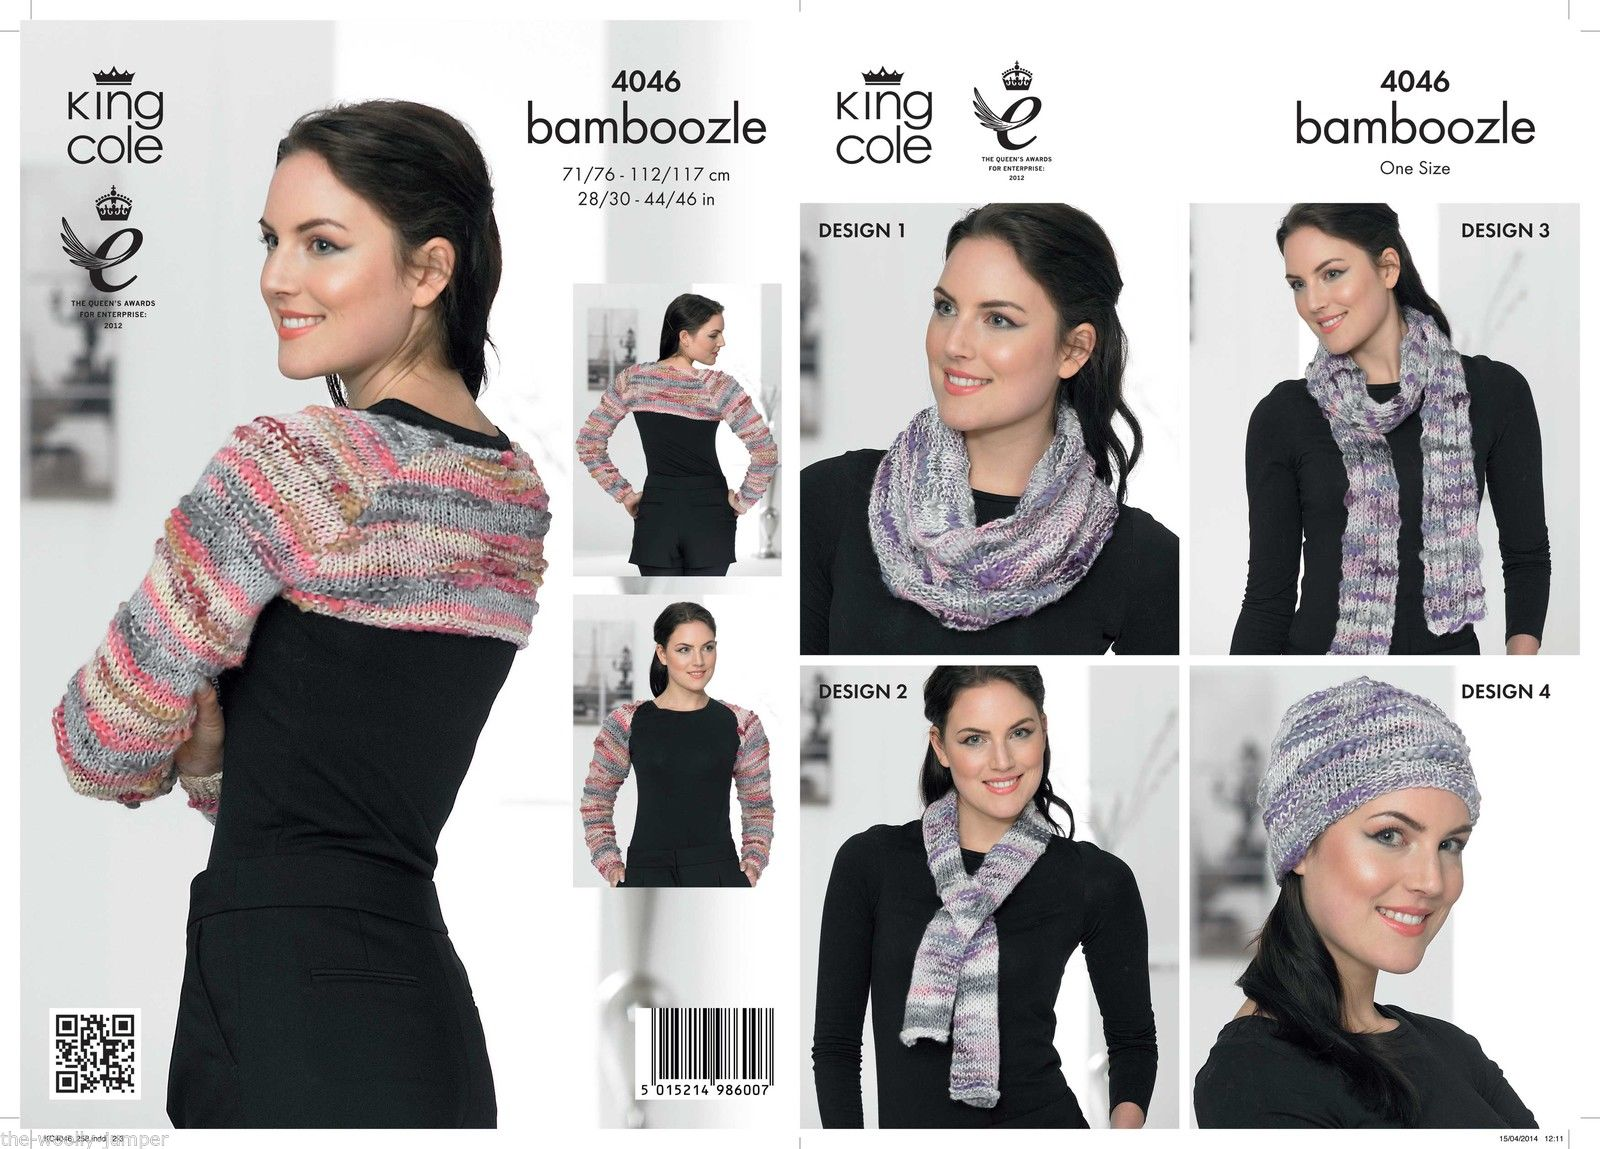 4046 - KING COLE BAMBOOZLE CHUNKY SHRUG HAT SCARF SNOOD KNITTING PATTERN